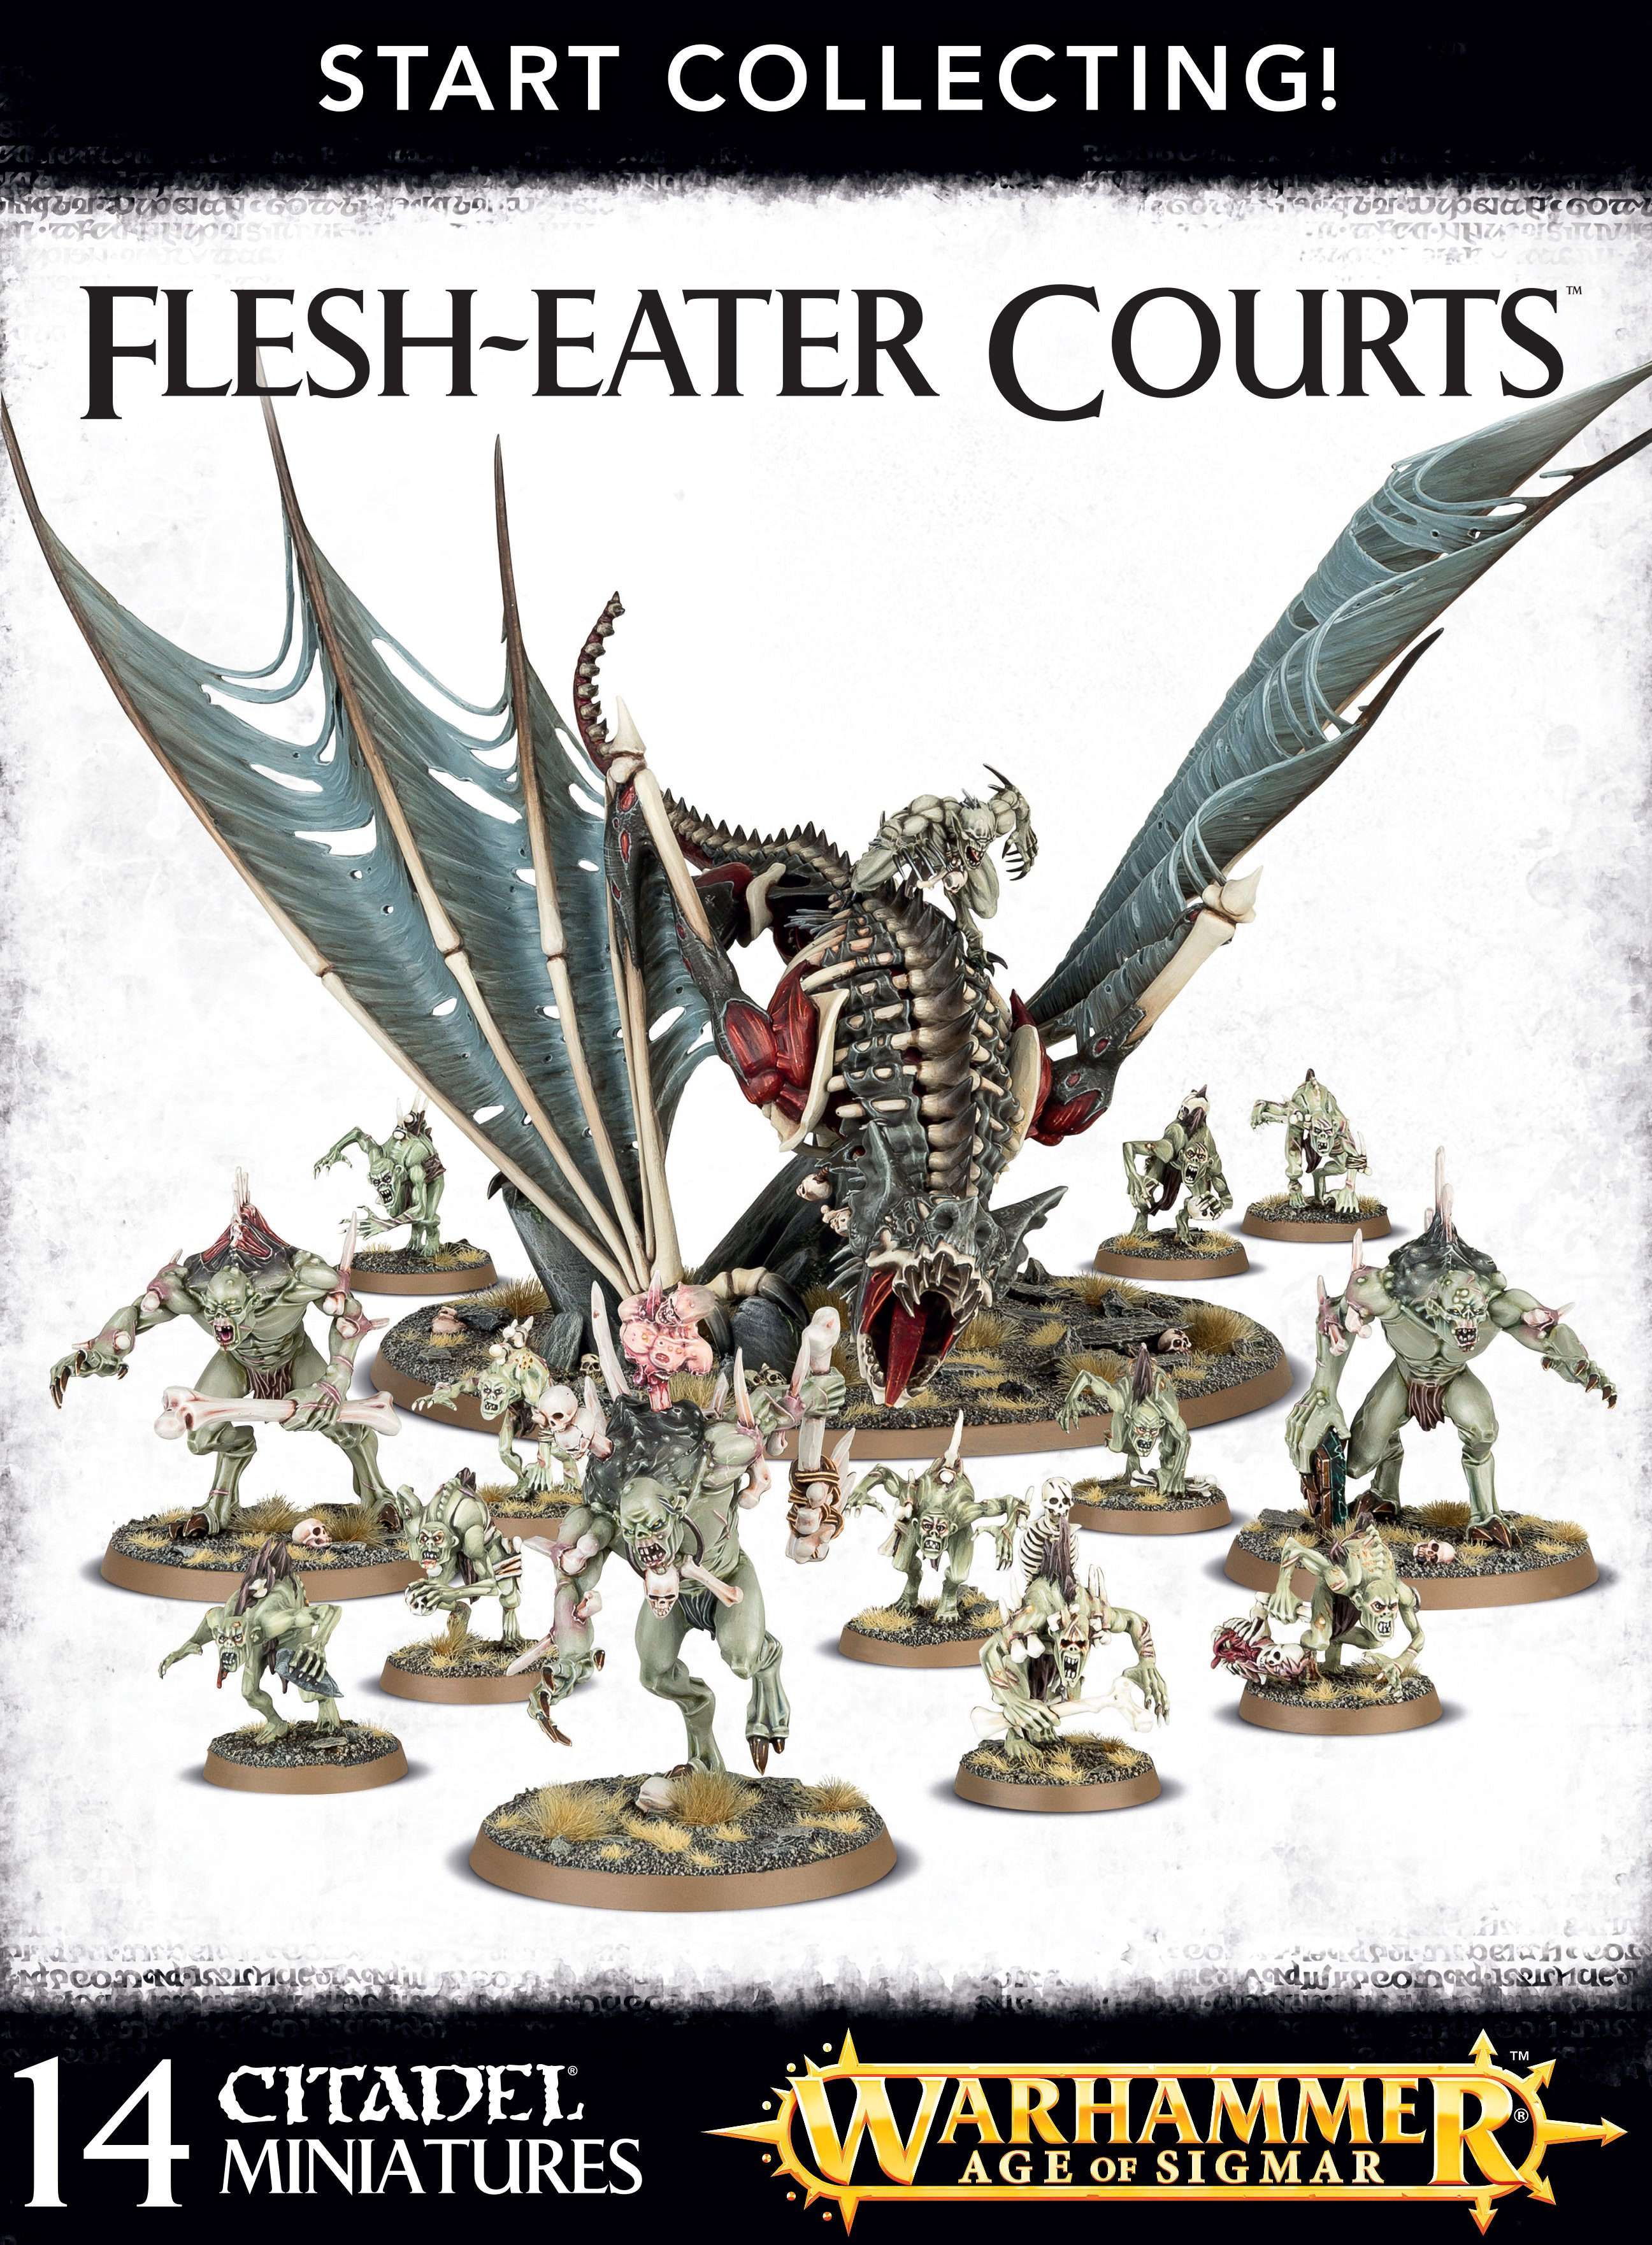 Warhammer Age Of Sigmar: Flesh-Eater Courts: Start Collecting!